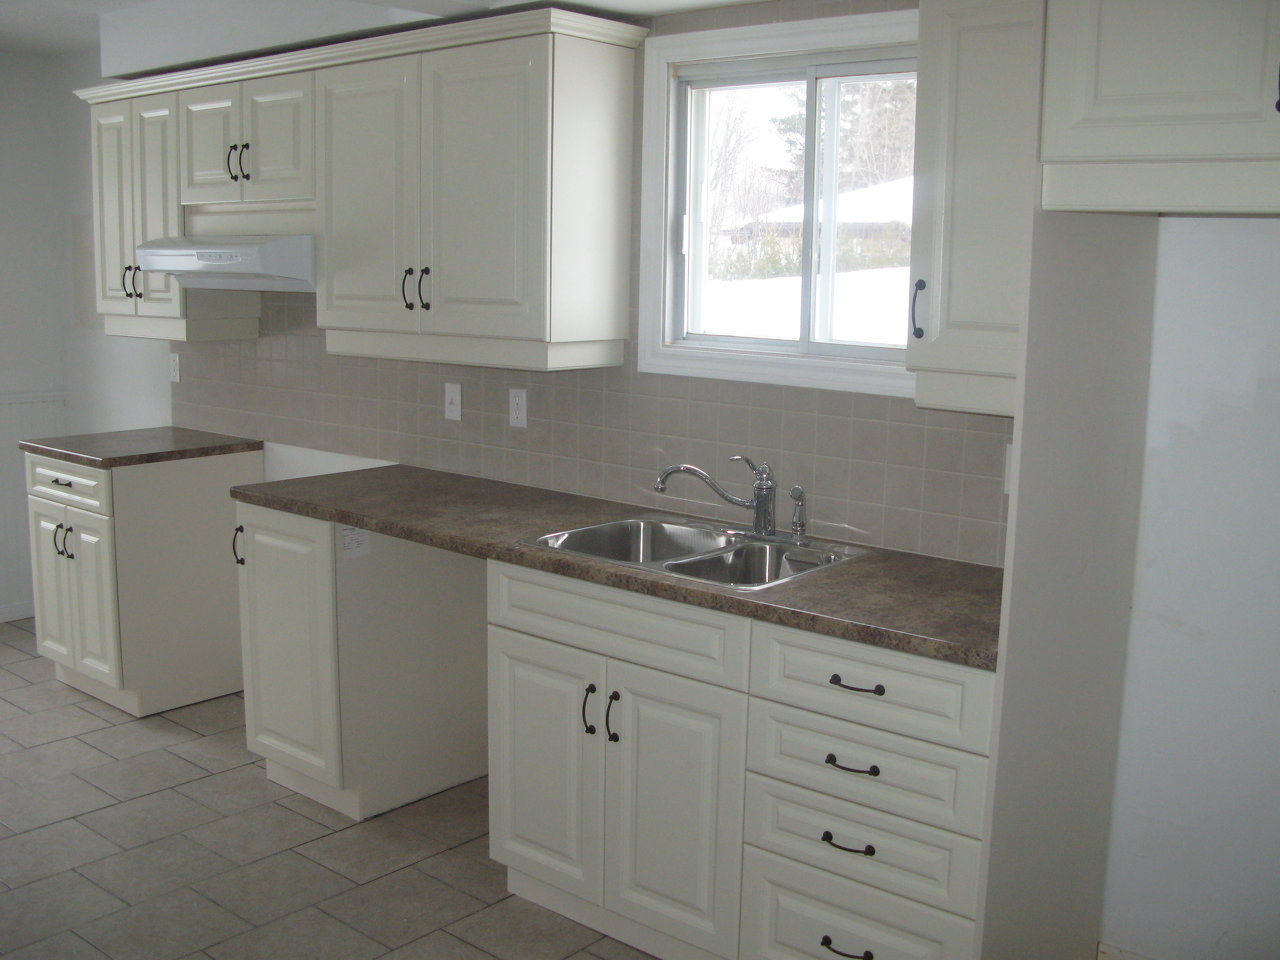 Montreal kitchen cabinets for Thermofoil kitchen cabinets